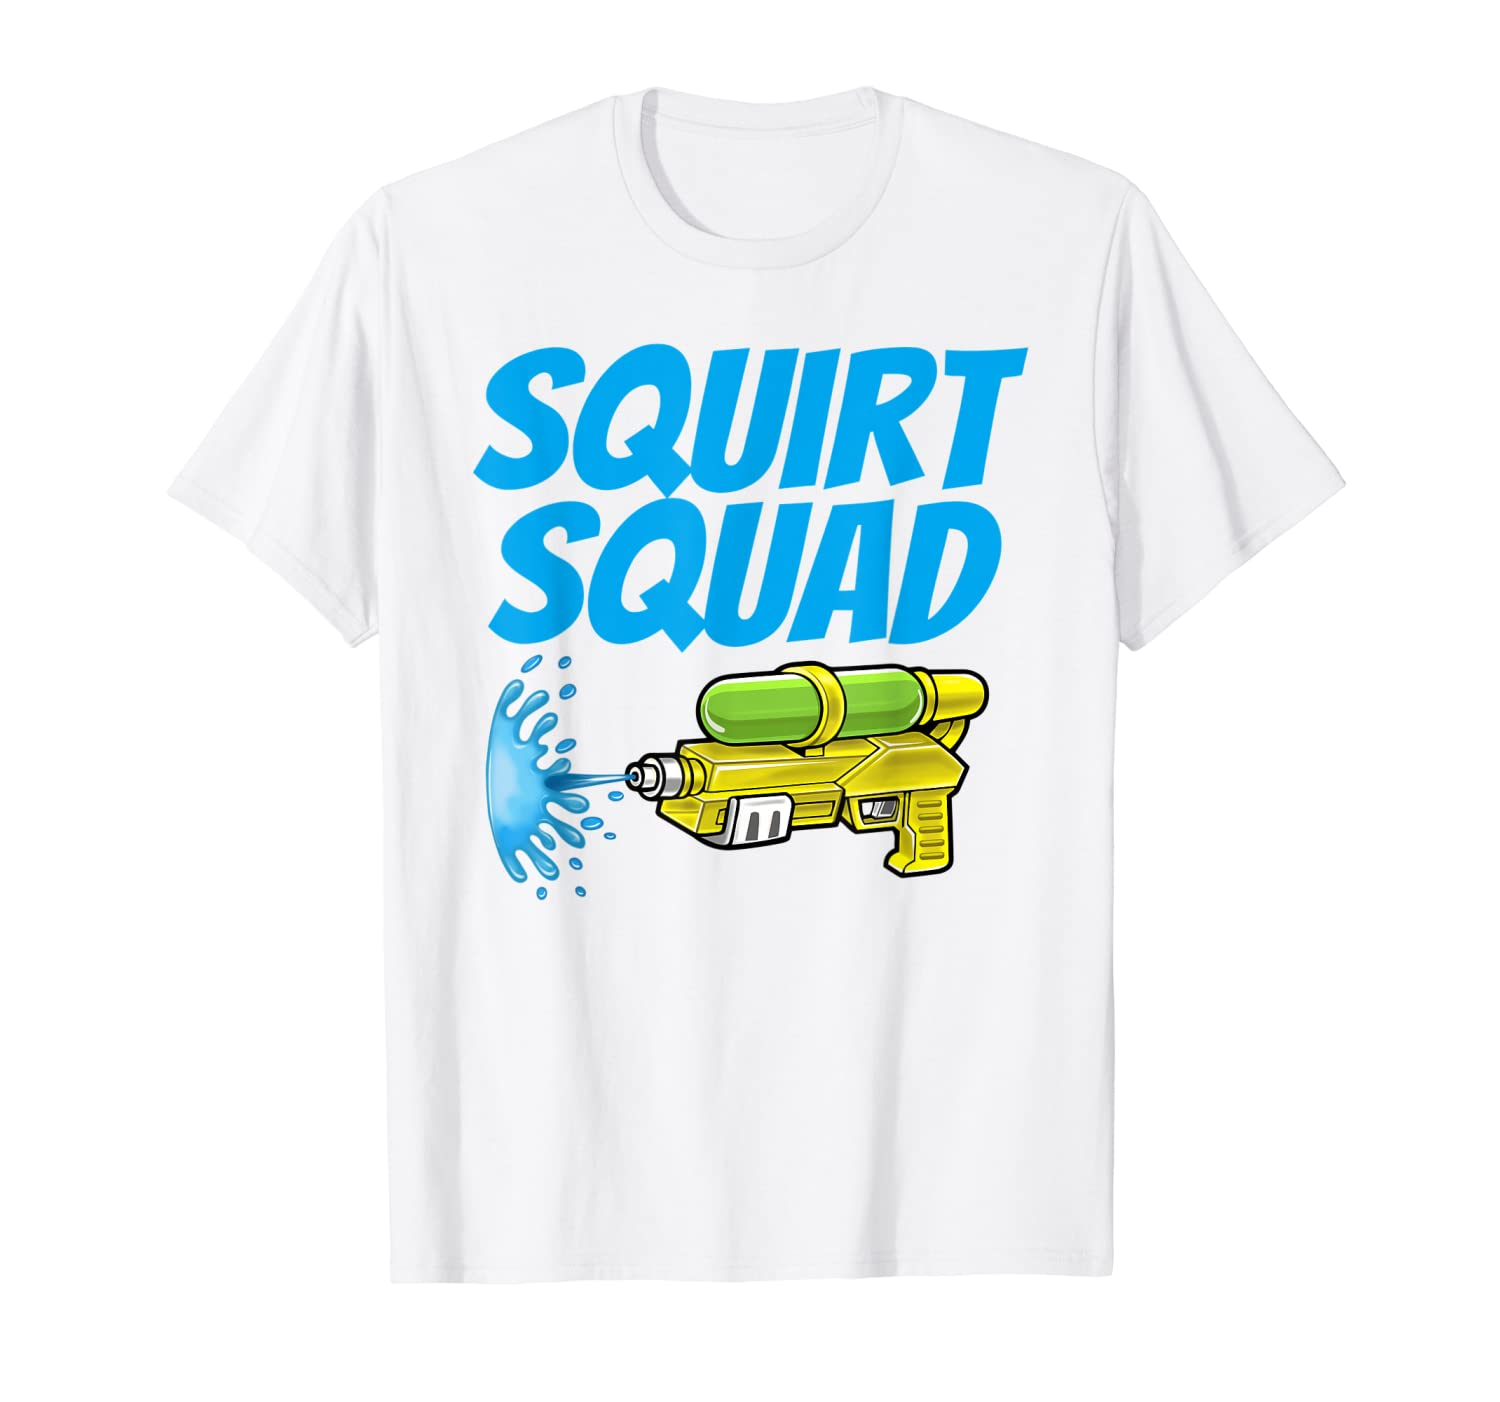 Amazon.com: Squirt Squad Water Summer Art T-Shirt for Men ...